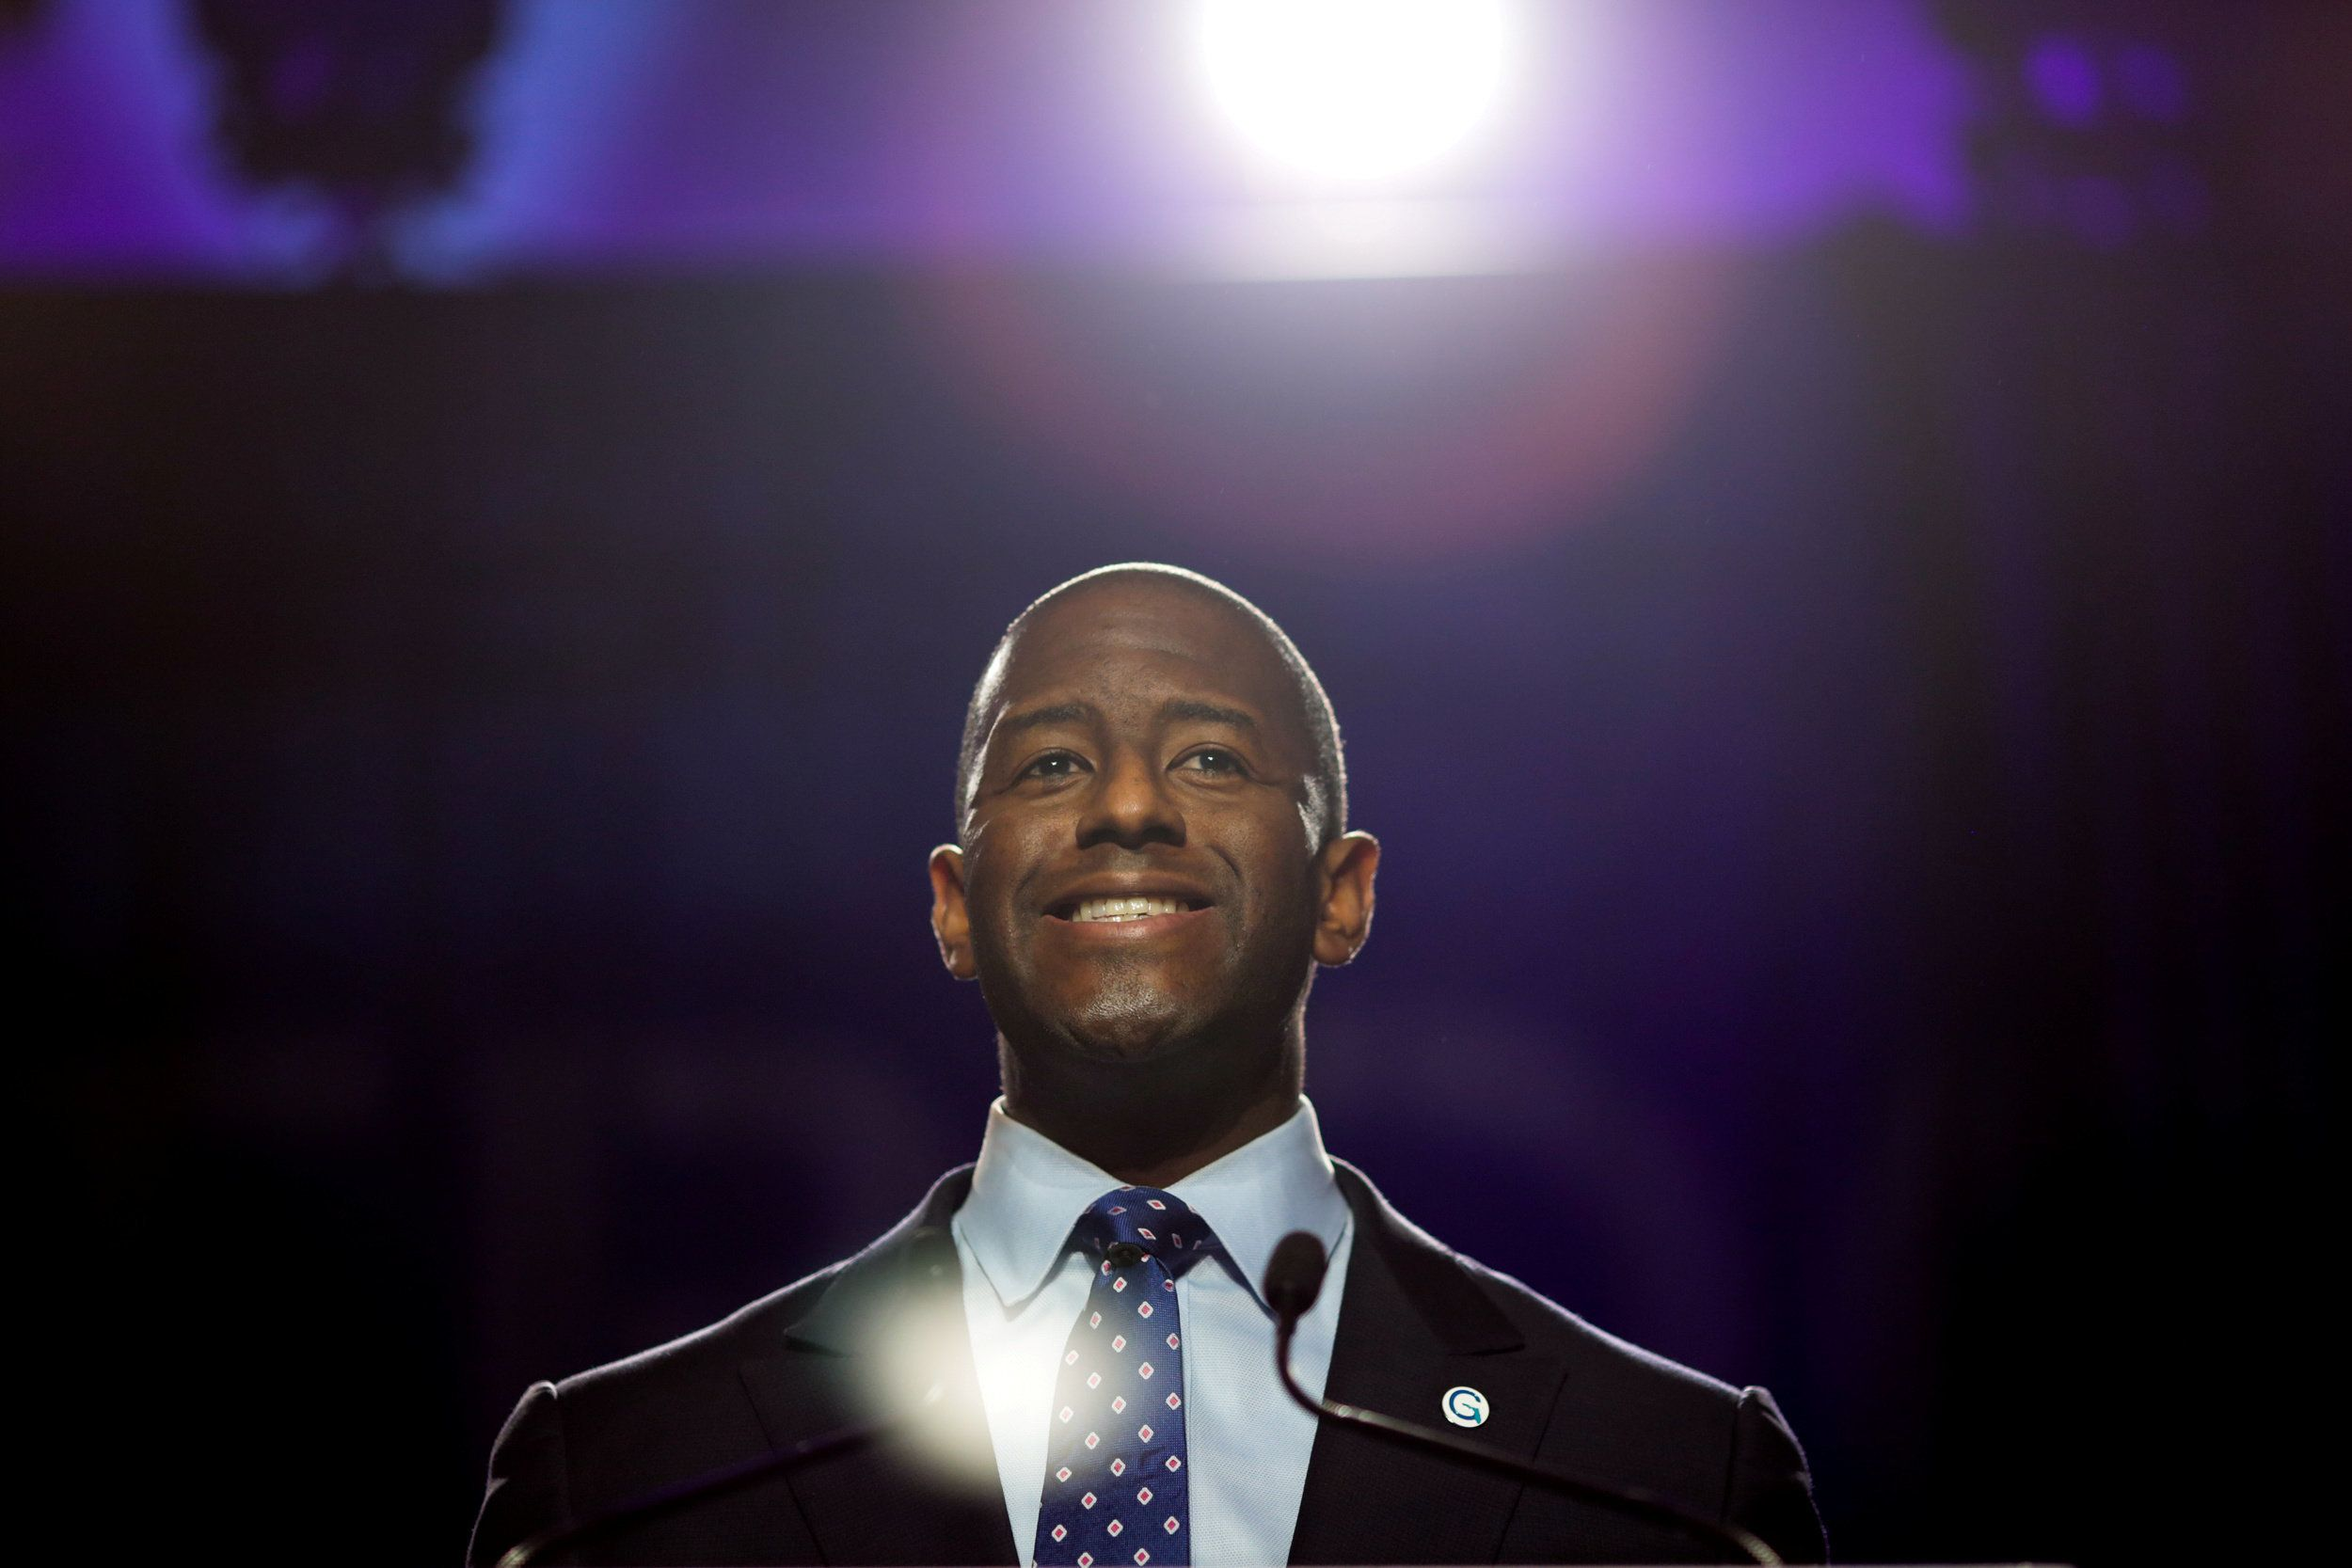 Tallahassee, Florida Mayor, Andrew D. Gillum addresses the audience at the Netroots Nation annual conference for political progressives in Atlanta, Georgia, U.S. August 10, 2017. REUTERS/Chris Aluka Berry